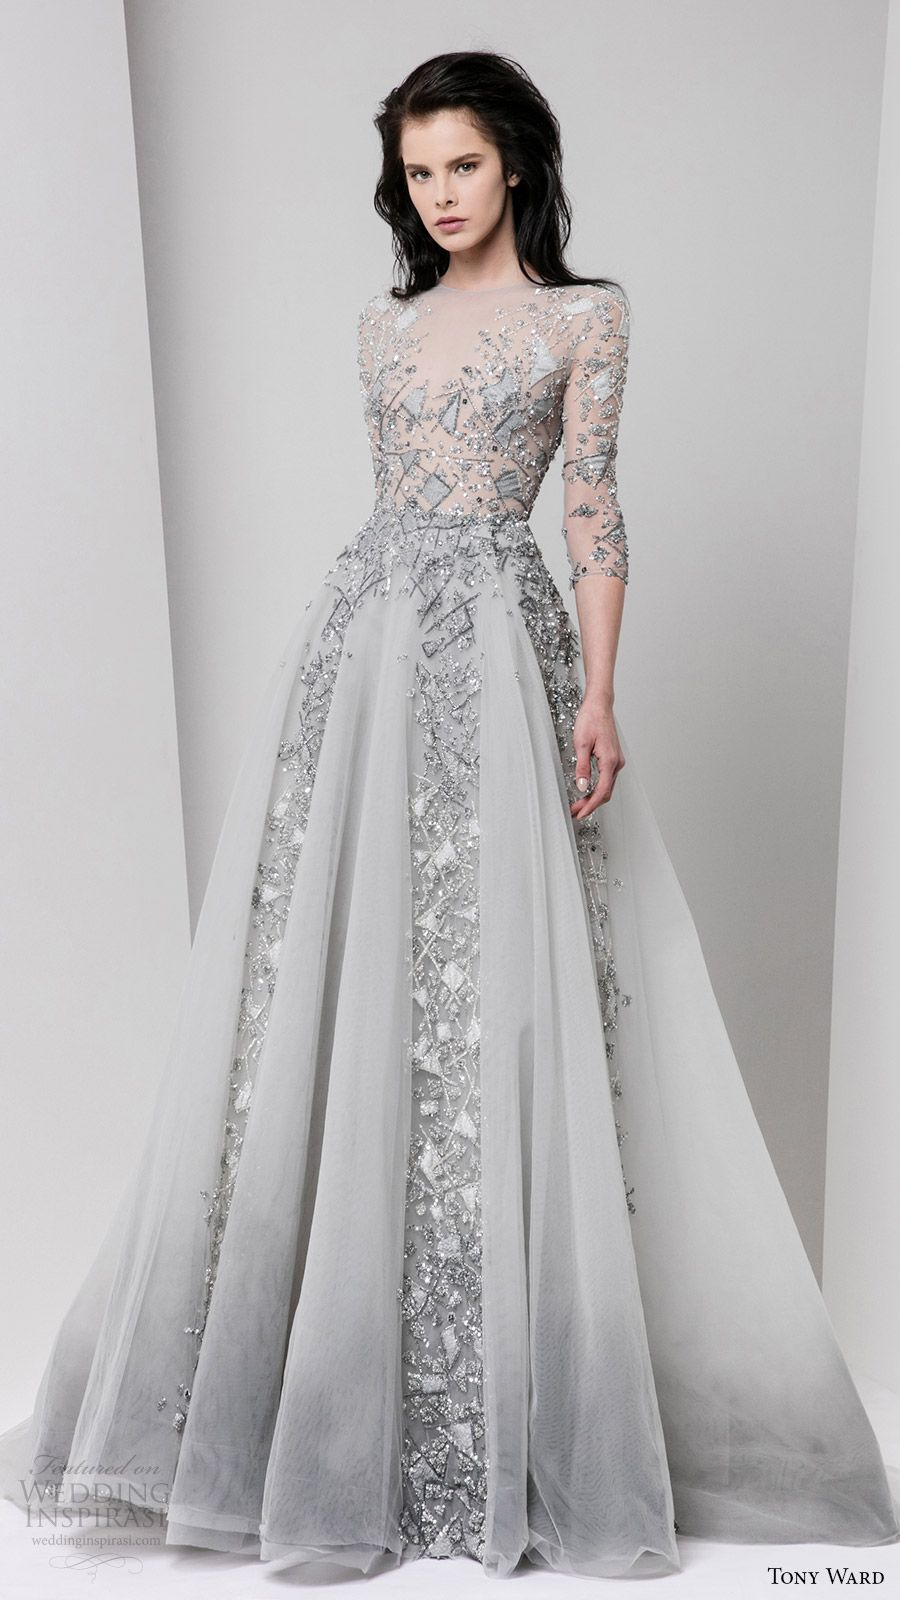 Tony Ward Fall 2016 Ready-to-Wear Dresses | Pinterest | Fall 2016 ...